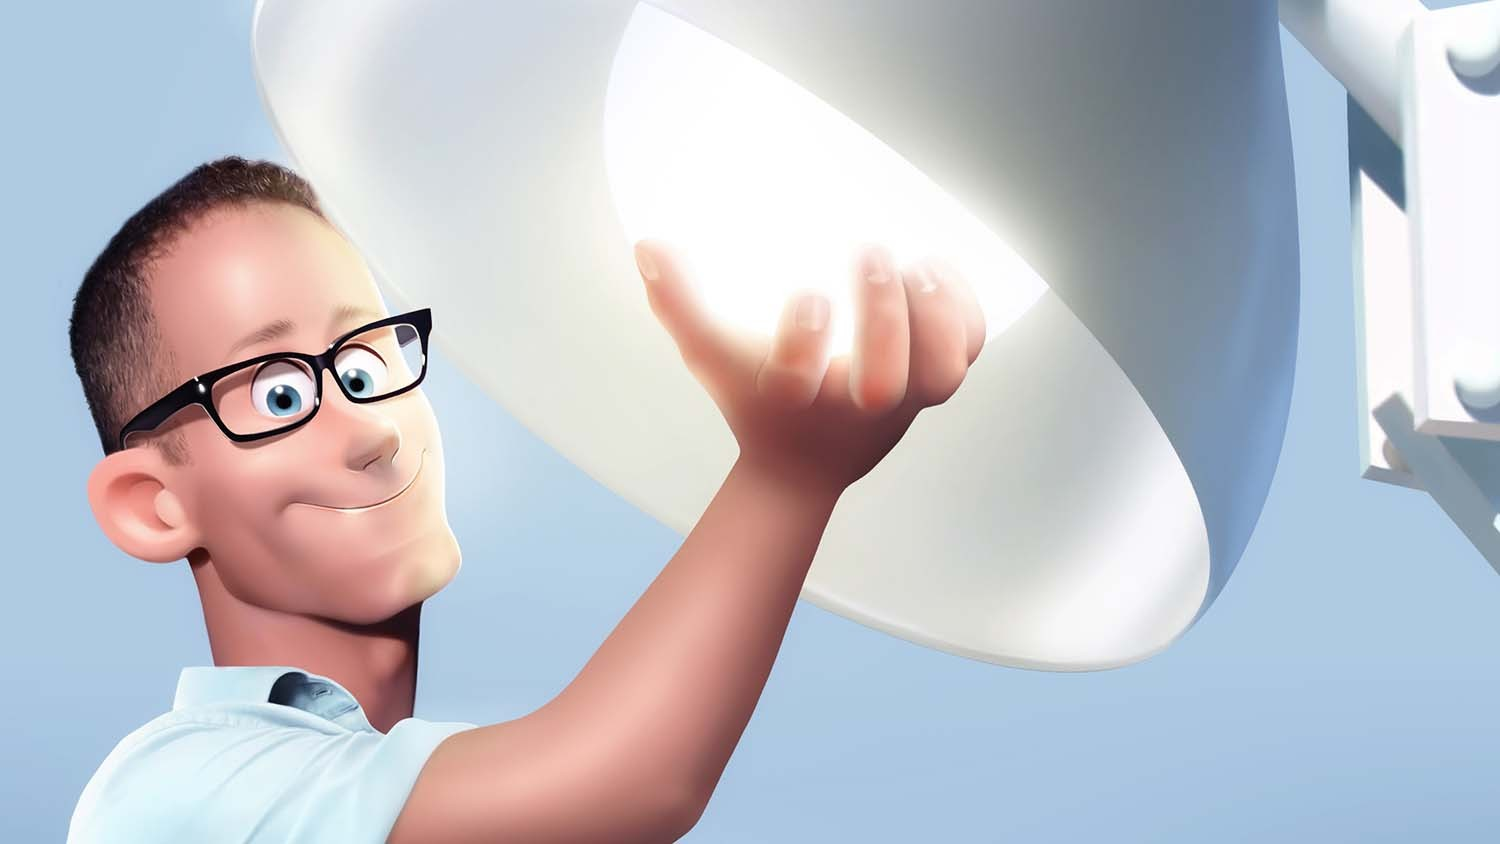 Reanimating Pixar: How Pete Docter Steered the Studio Out of Scandal